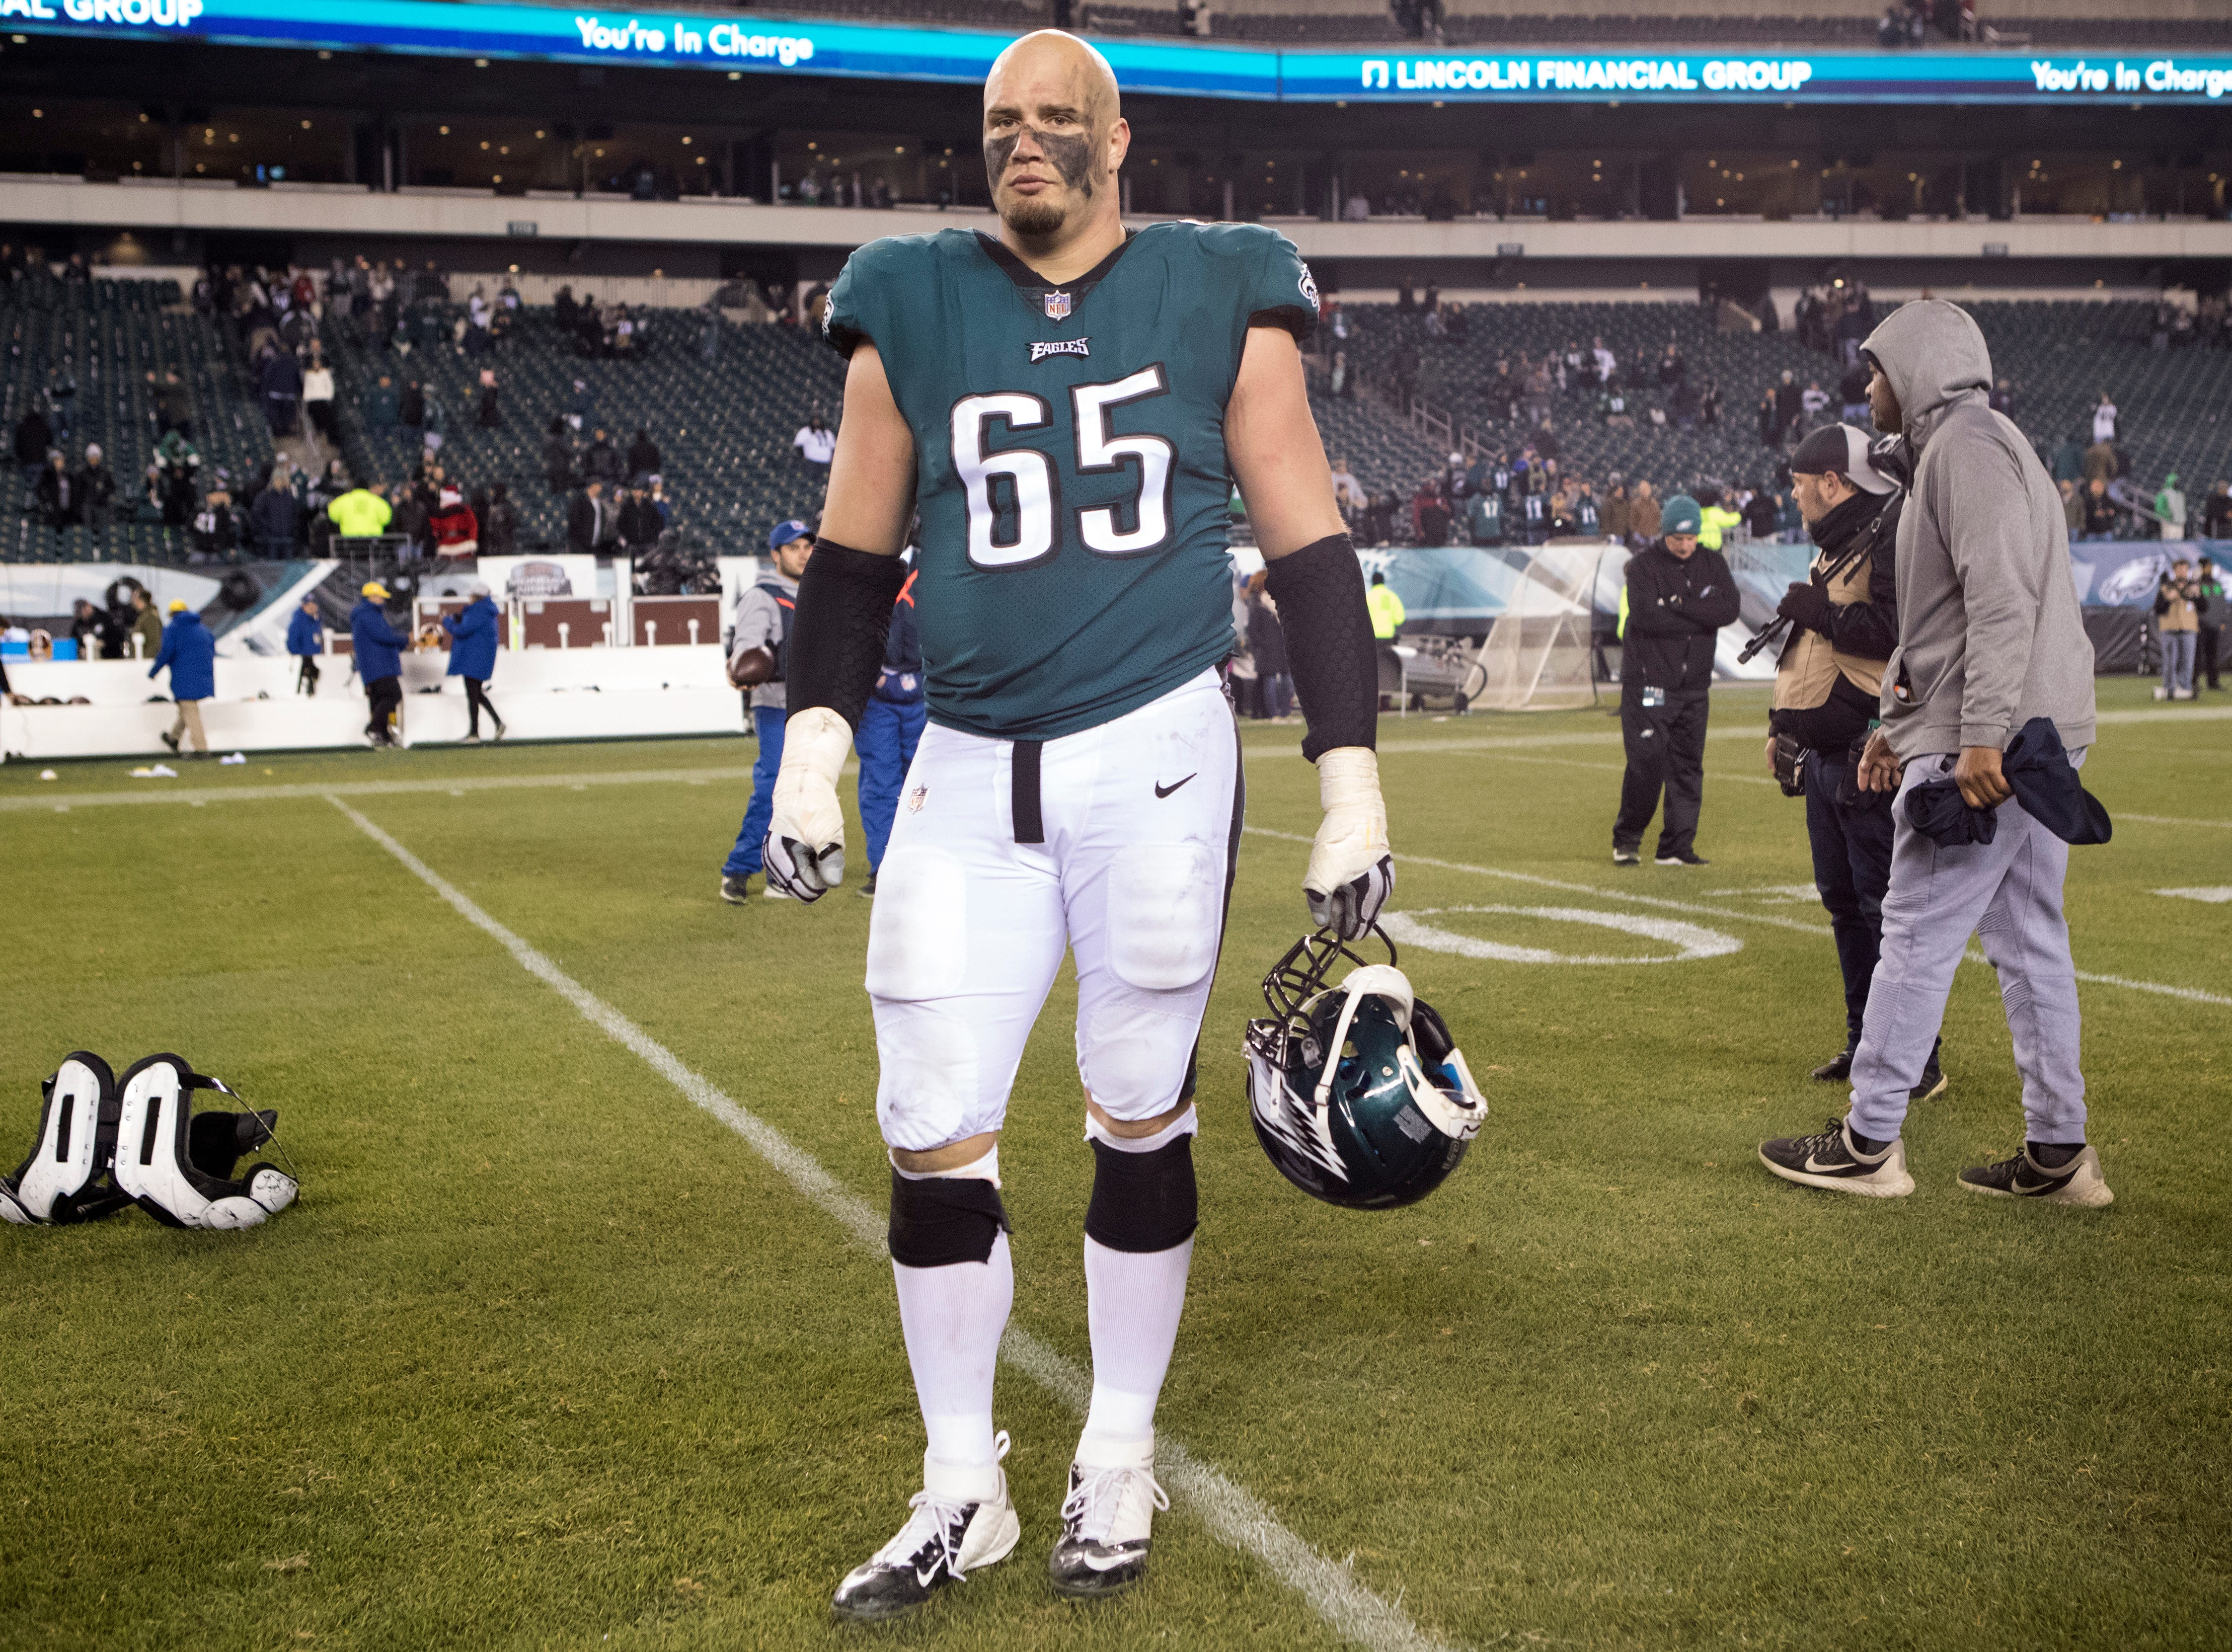 Eagles' Lane Johnson waits to speak to the media after defeating the Redskins 28-13 Monday night.